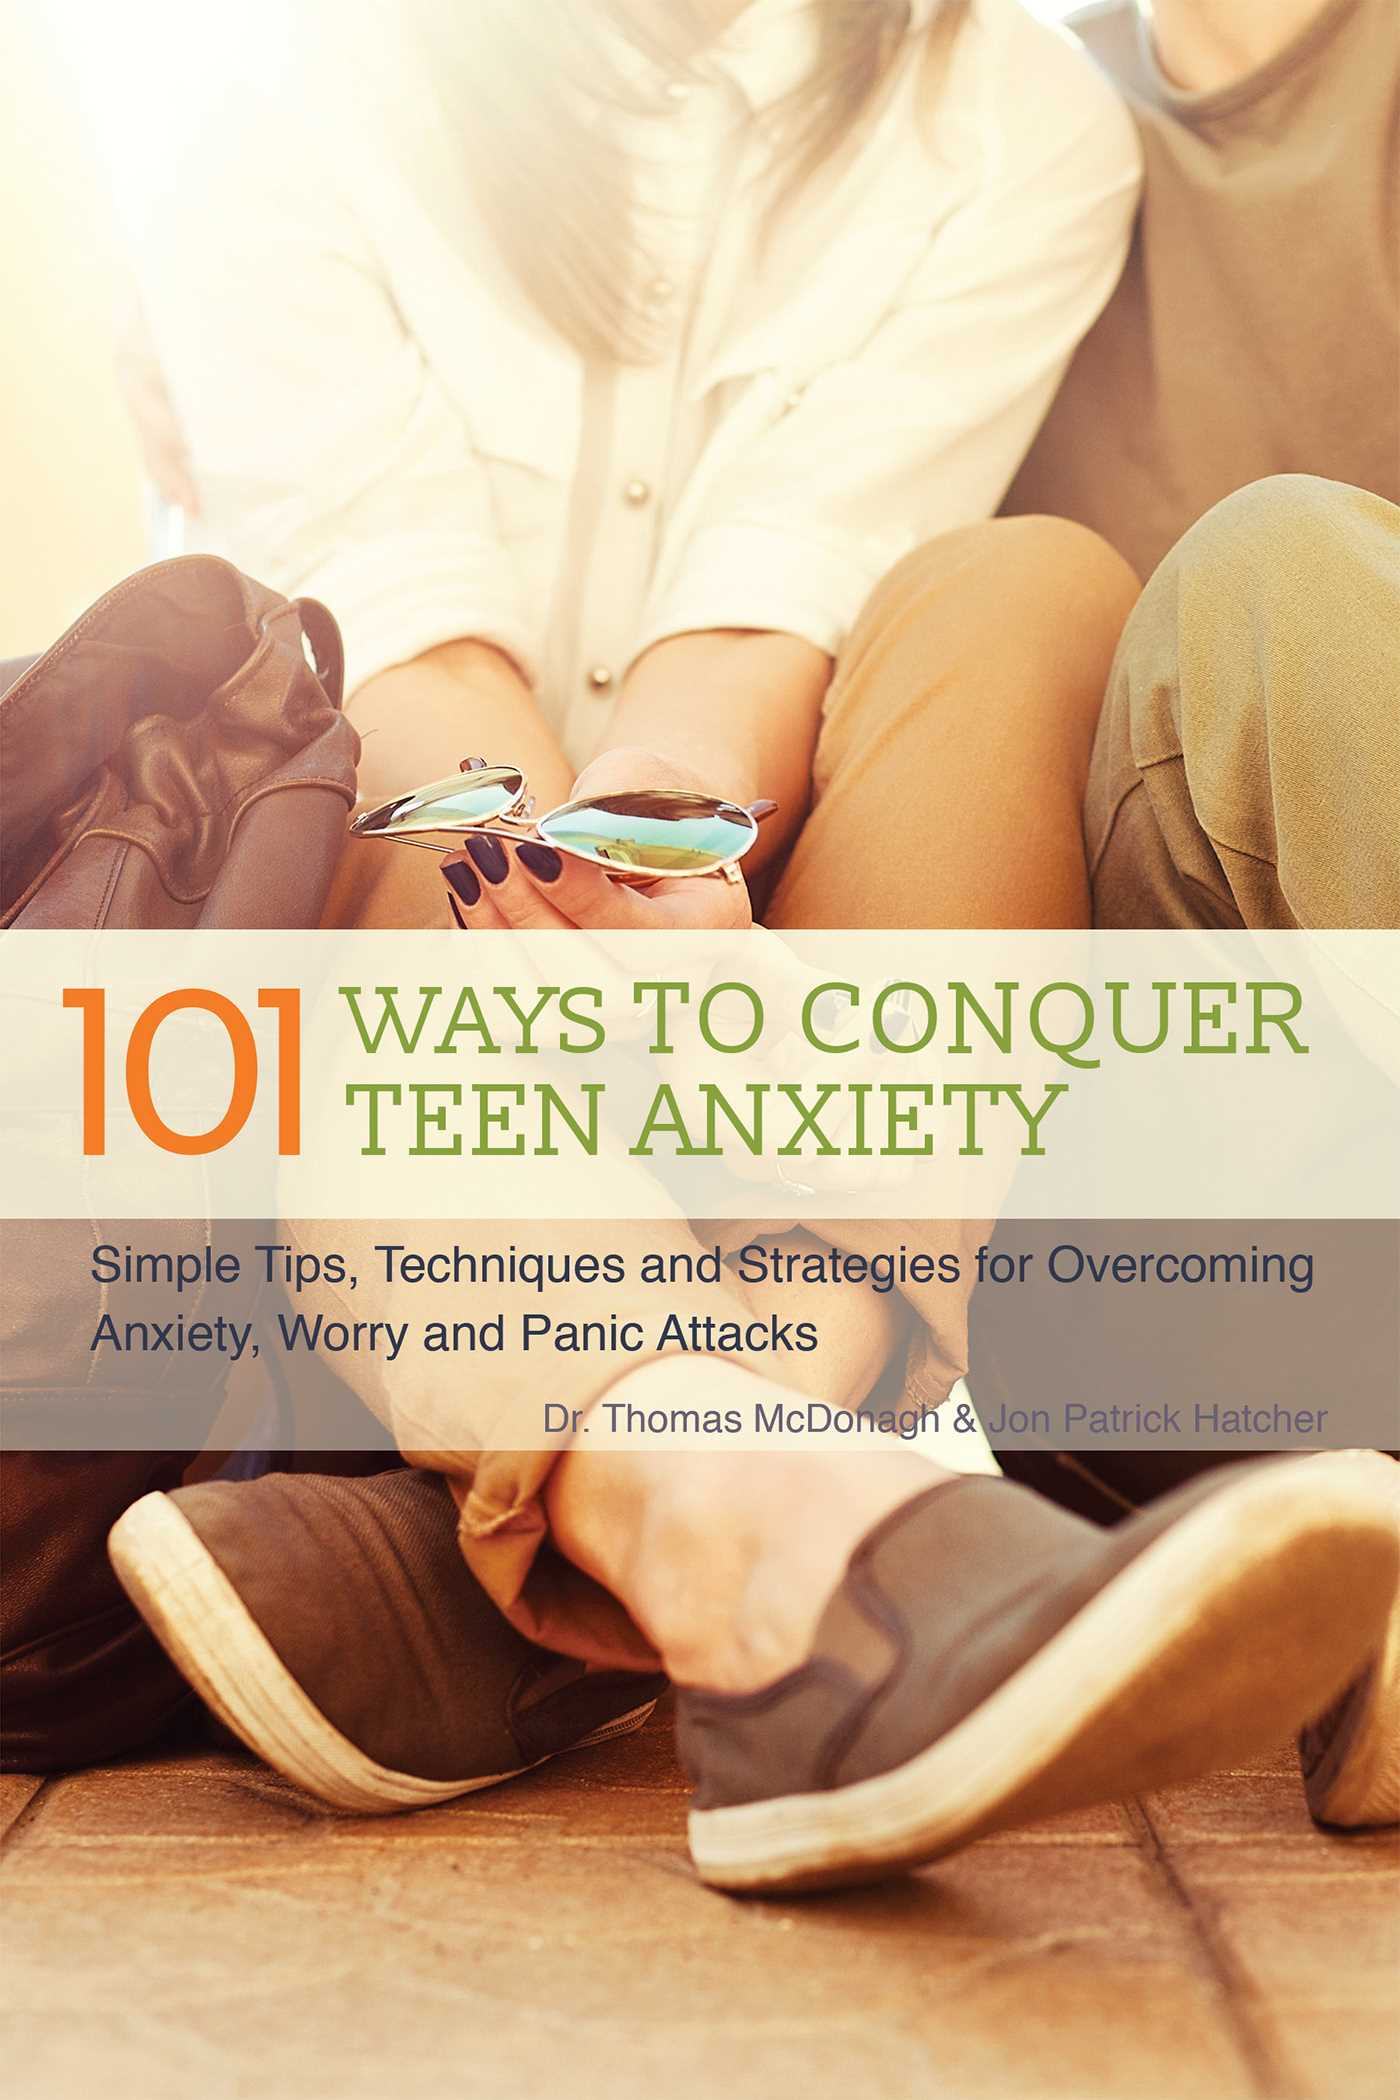 101 Ways to Conquer Teen Anxiety Simple Tips, Techniques and Strategies for Overcoming Anxiety, Worry and Panic Attacks